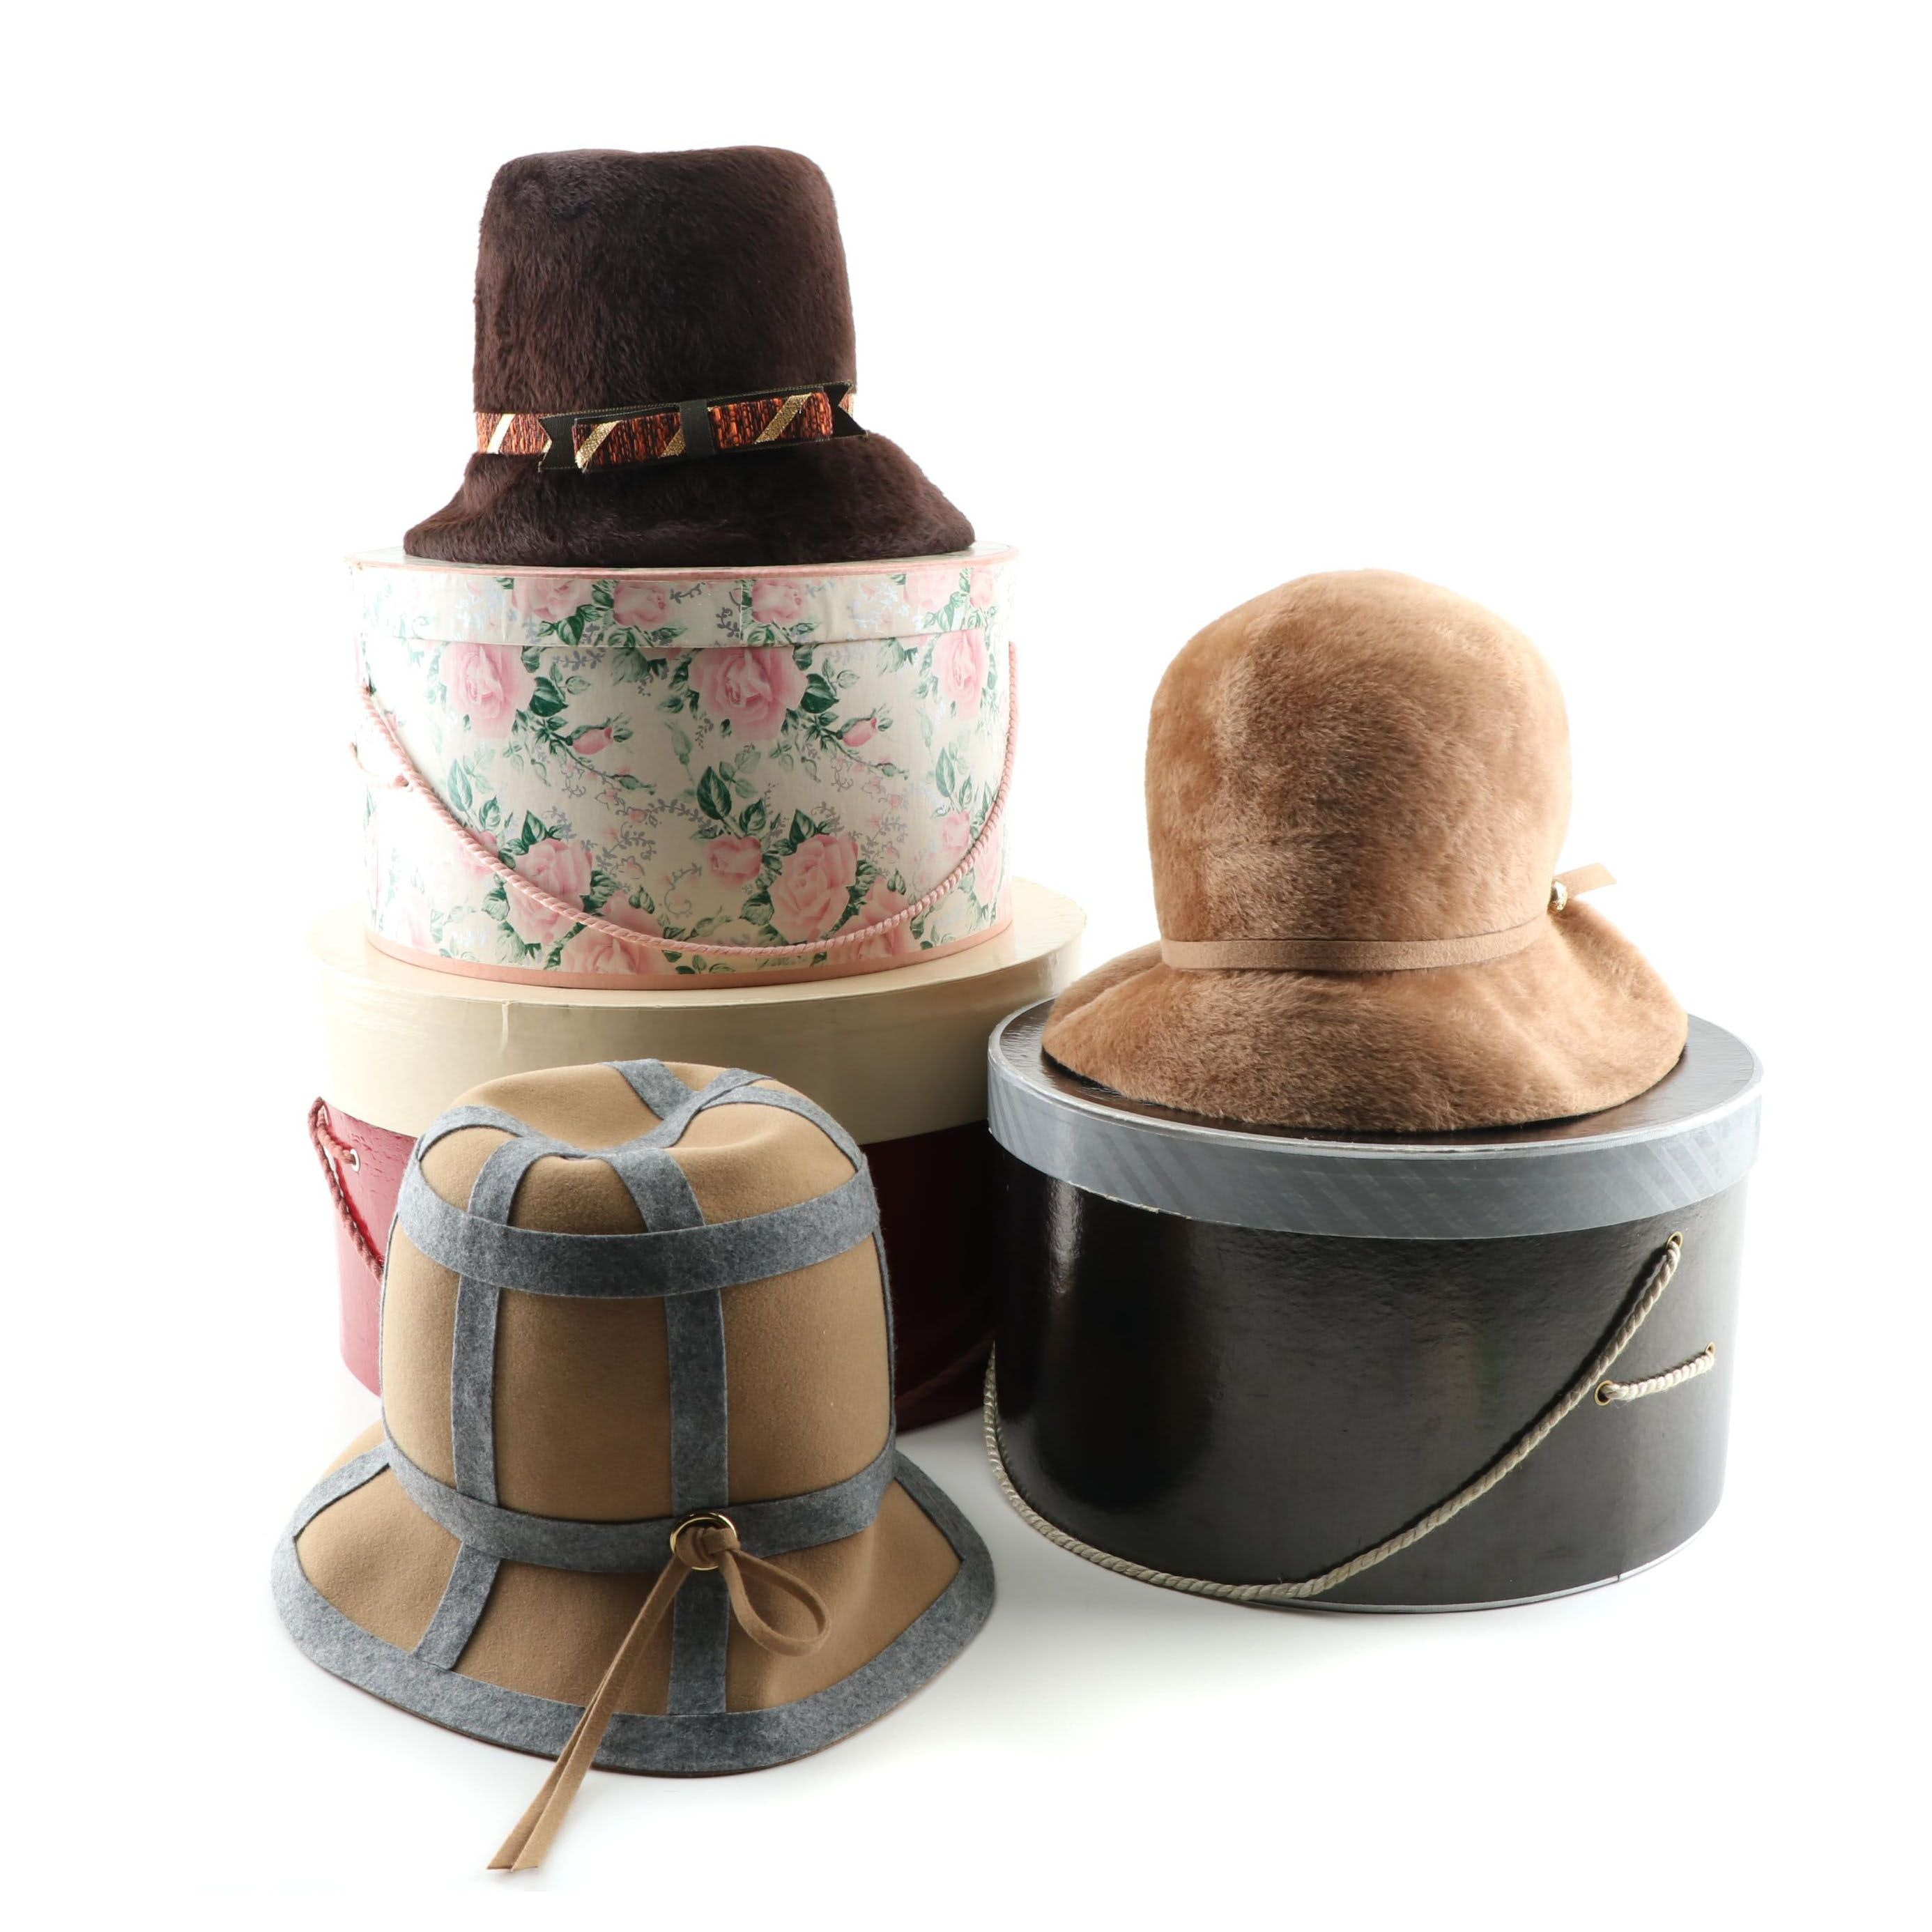 Women's Vintage Felted Wool and Fur Bucket Hats including Mr. John Classic